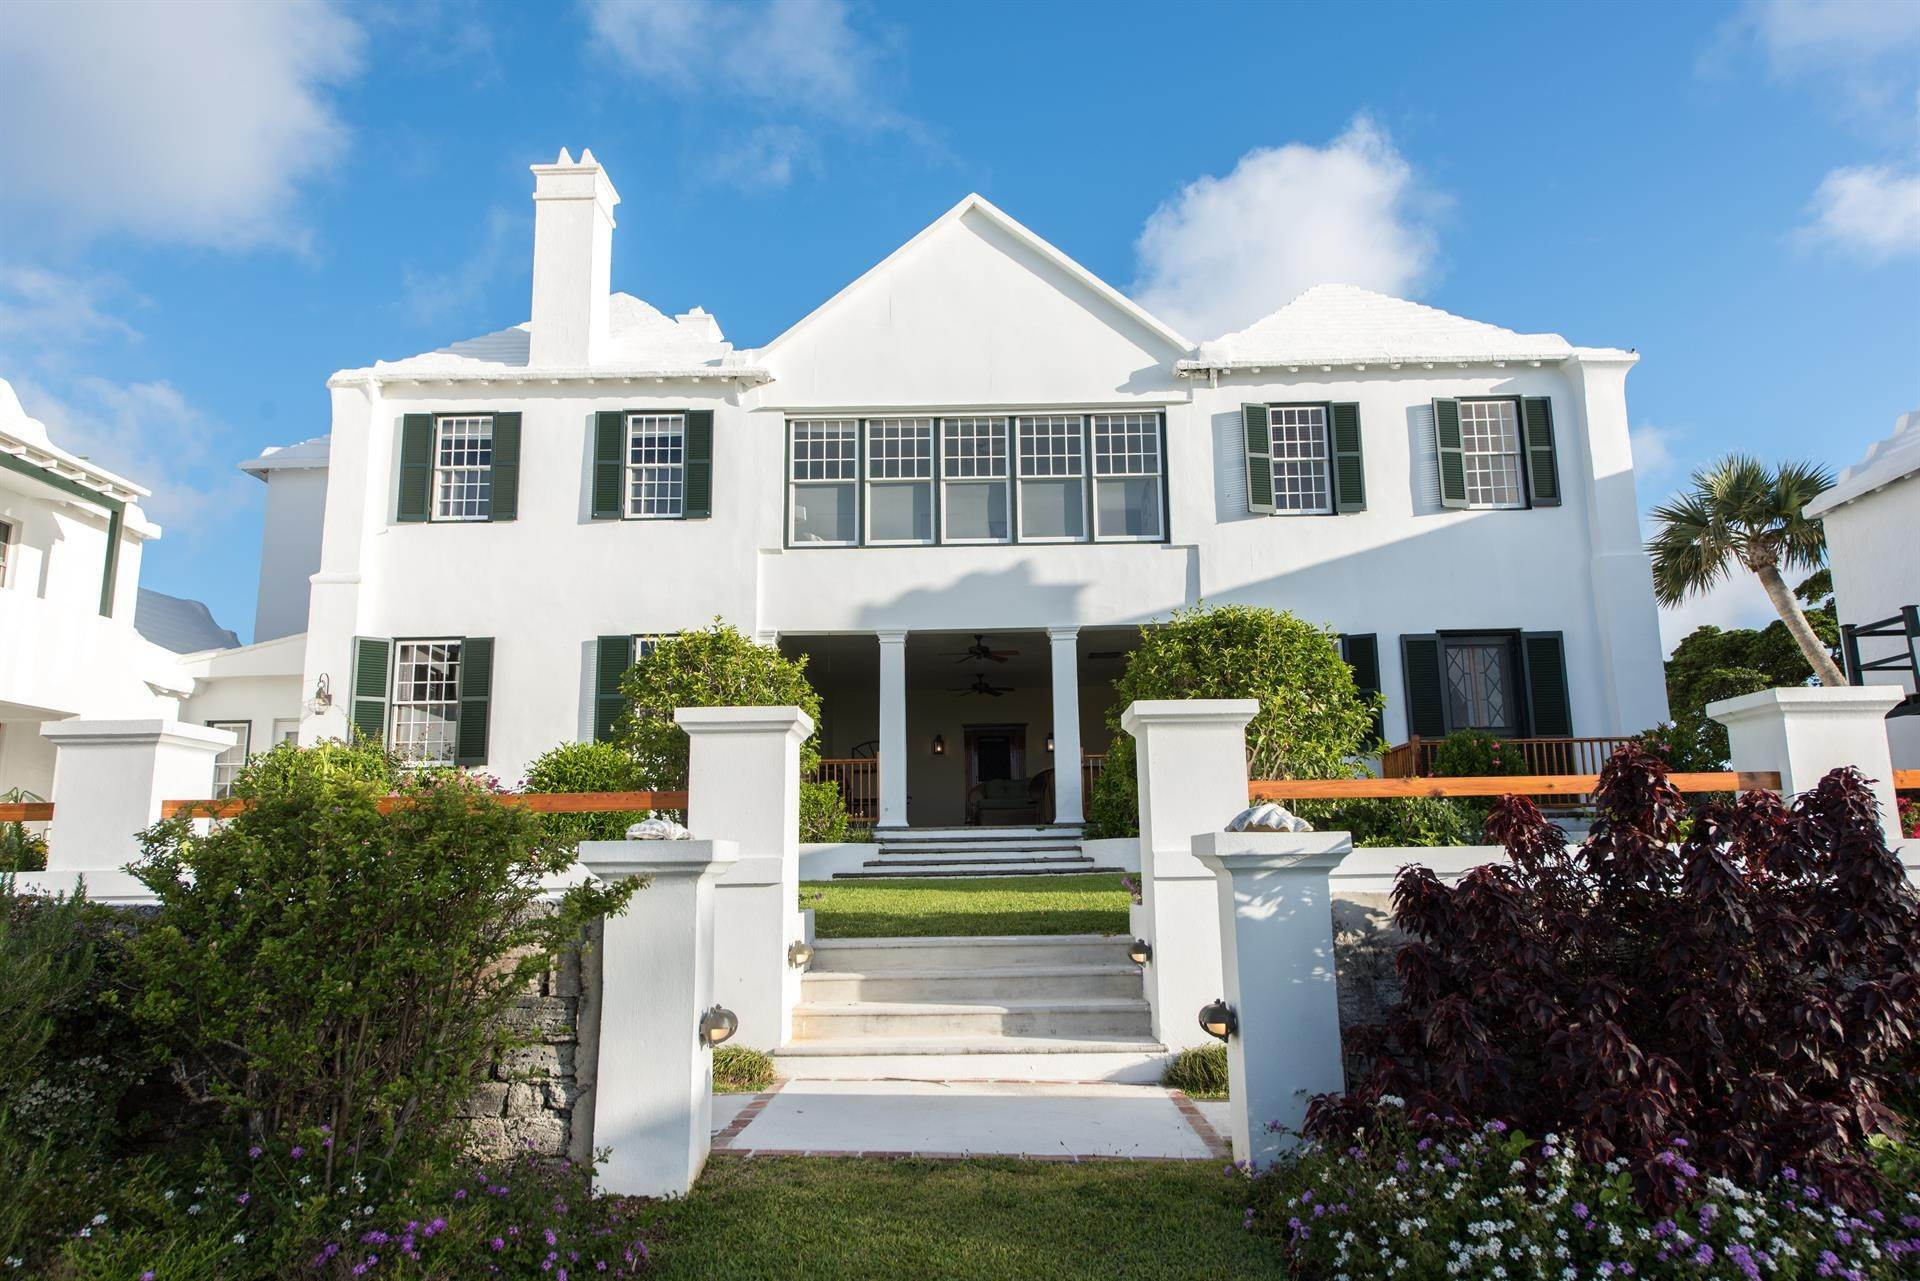 21. Propriedade para Venda às Bellevue Estate At Grape Bay Beach Bellevue Estate At Grape Bay Beach, 6 Bellevue Drive,Bermuda – Sinclair Realty